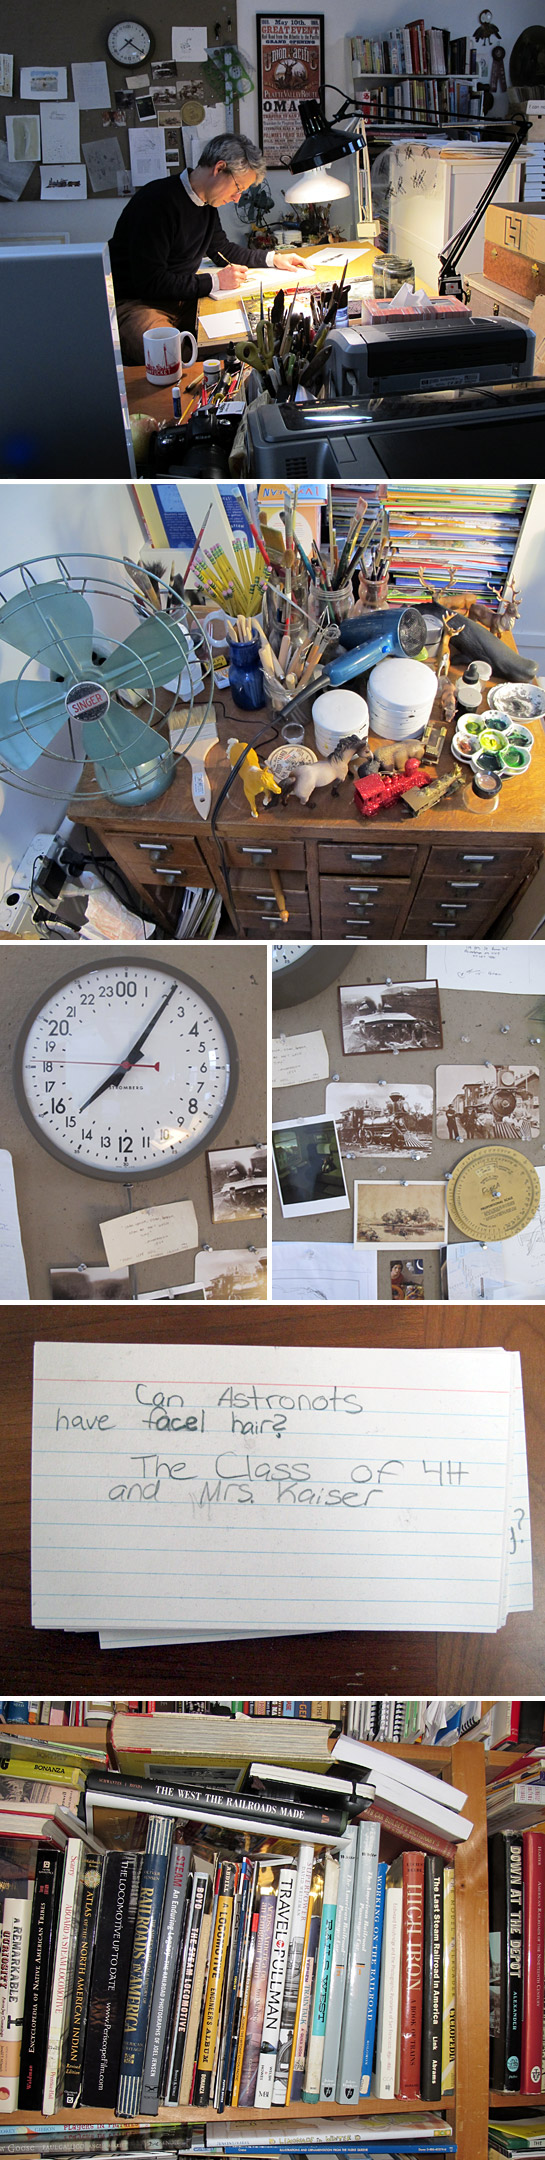 "Brian Floca's work space.From top: Brian working at his desk; some of Brian's materials and scale models. Brian uses the scale models to help him draw things from a distance; a twenty-four hour clock; old postcards serve as inspiration for his upcoming book, Locomotive; A favorite question from a child during a class visit for Brian's book, Moonshot. ""I told them I think everyone can have facial hair now. It's been sort of a facial hair revolution in space but initially I think you had to be clean shaven.""; Research books for Locomotive."